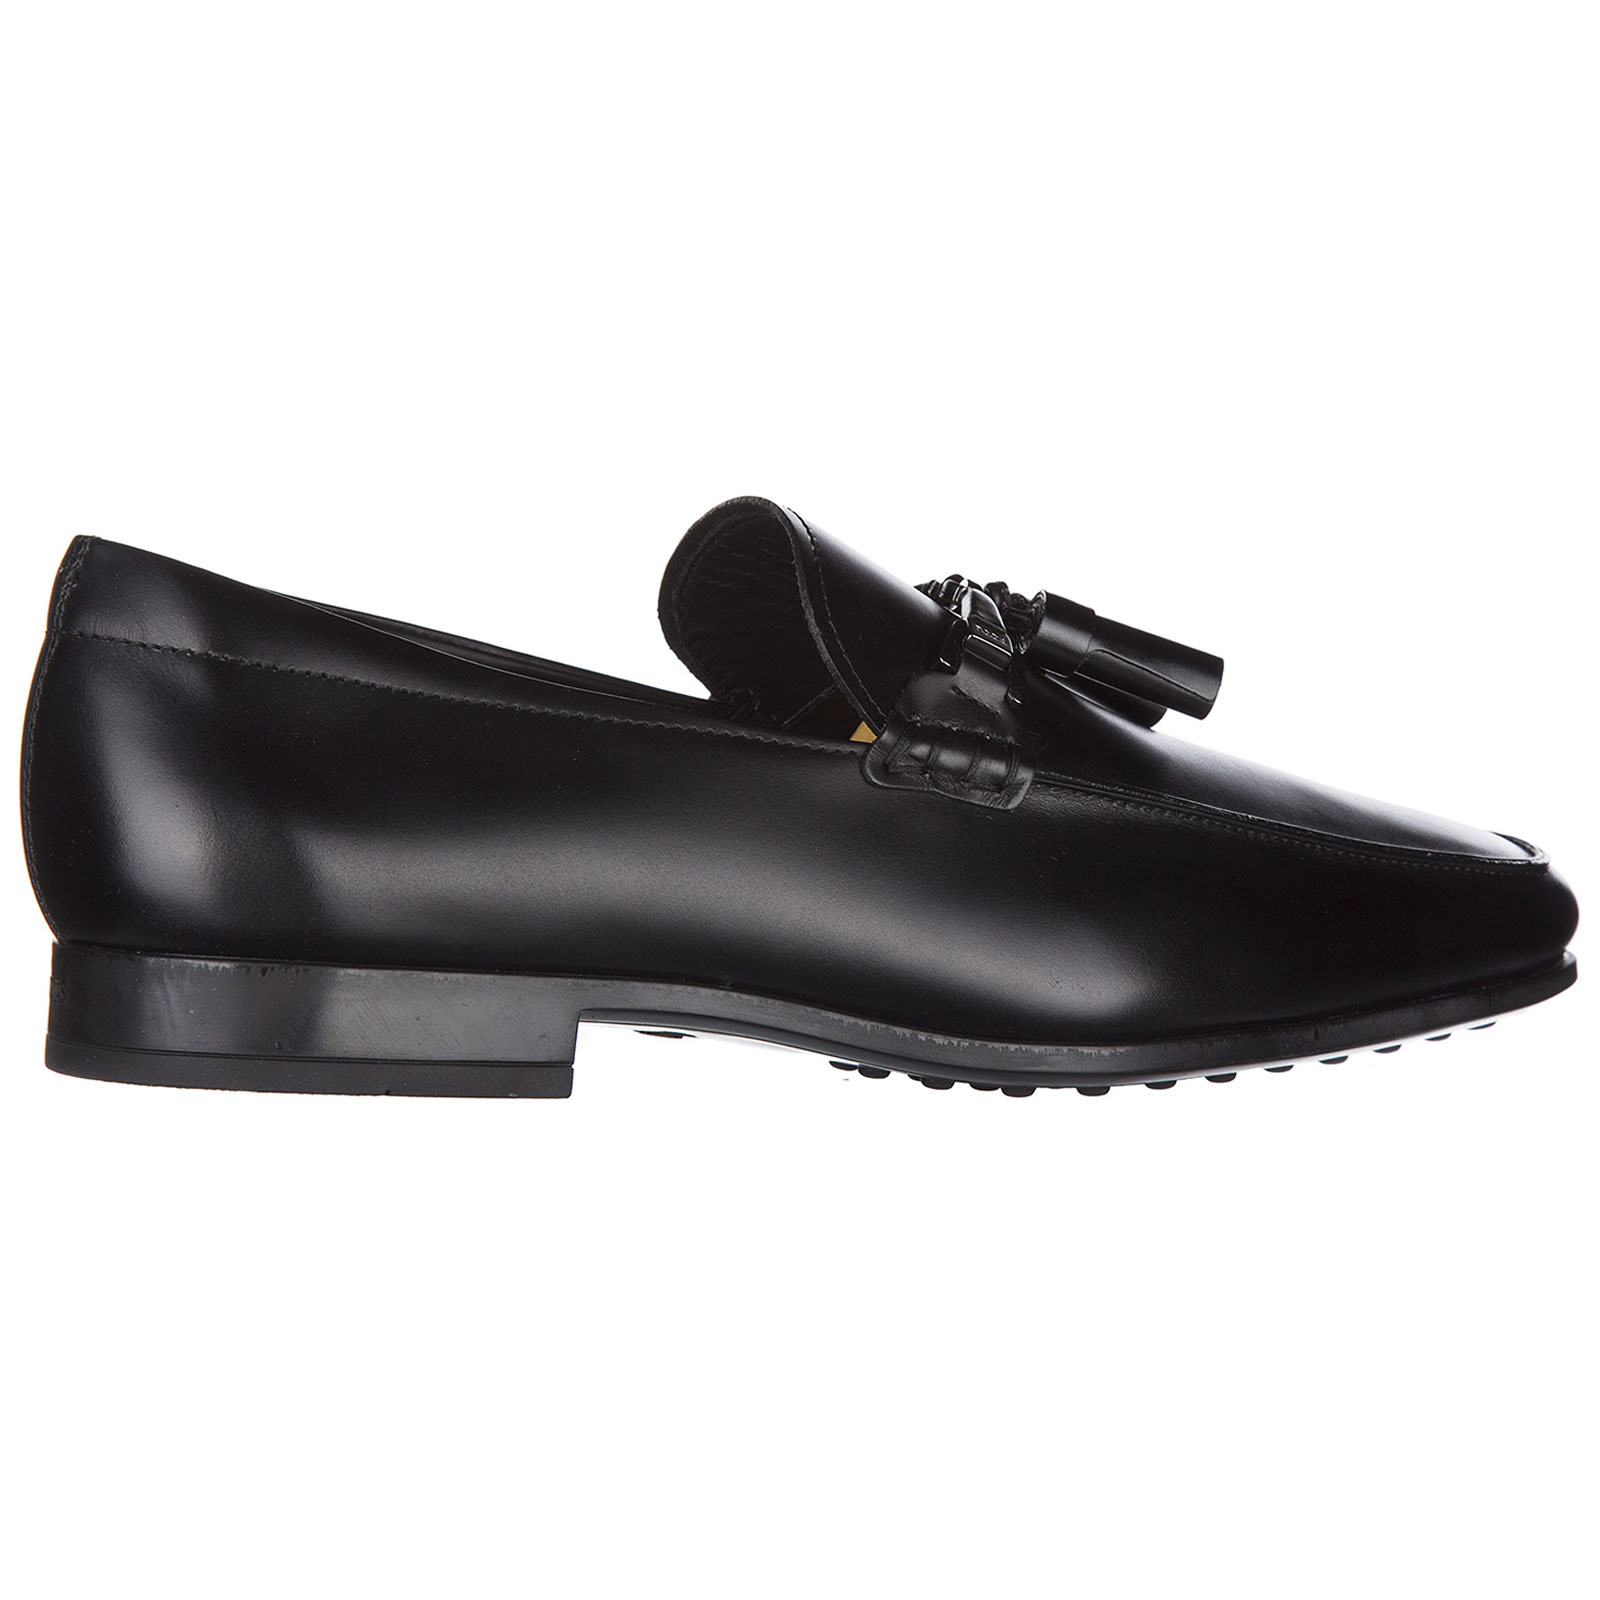 Men's leather loafers moccasins  doppia t nappine